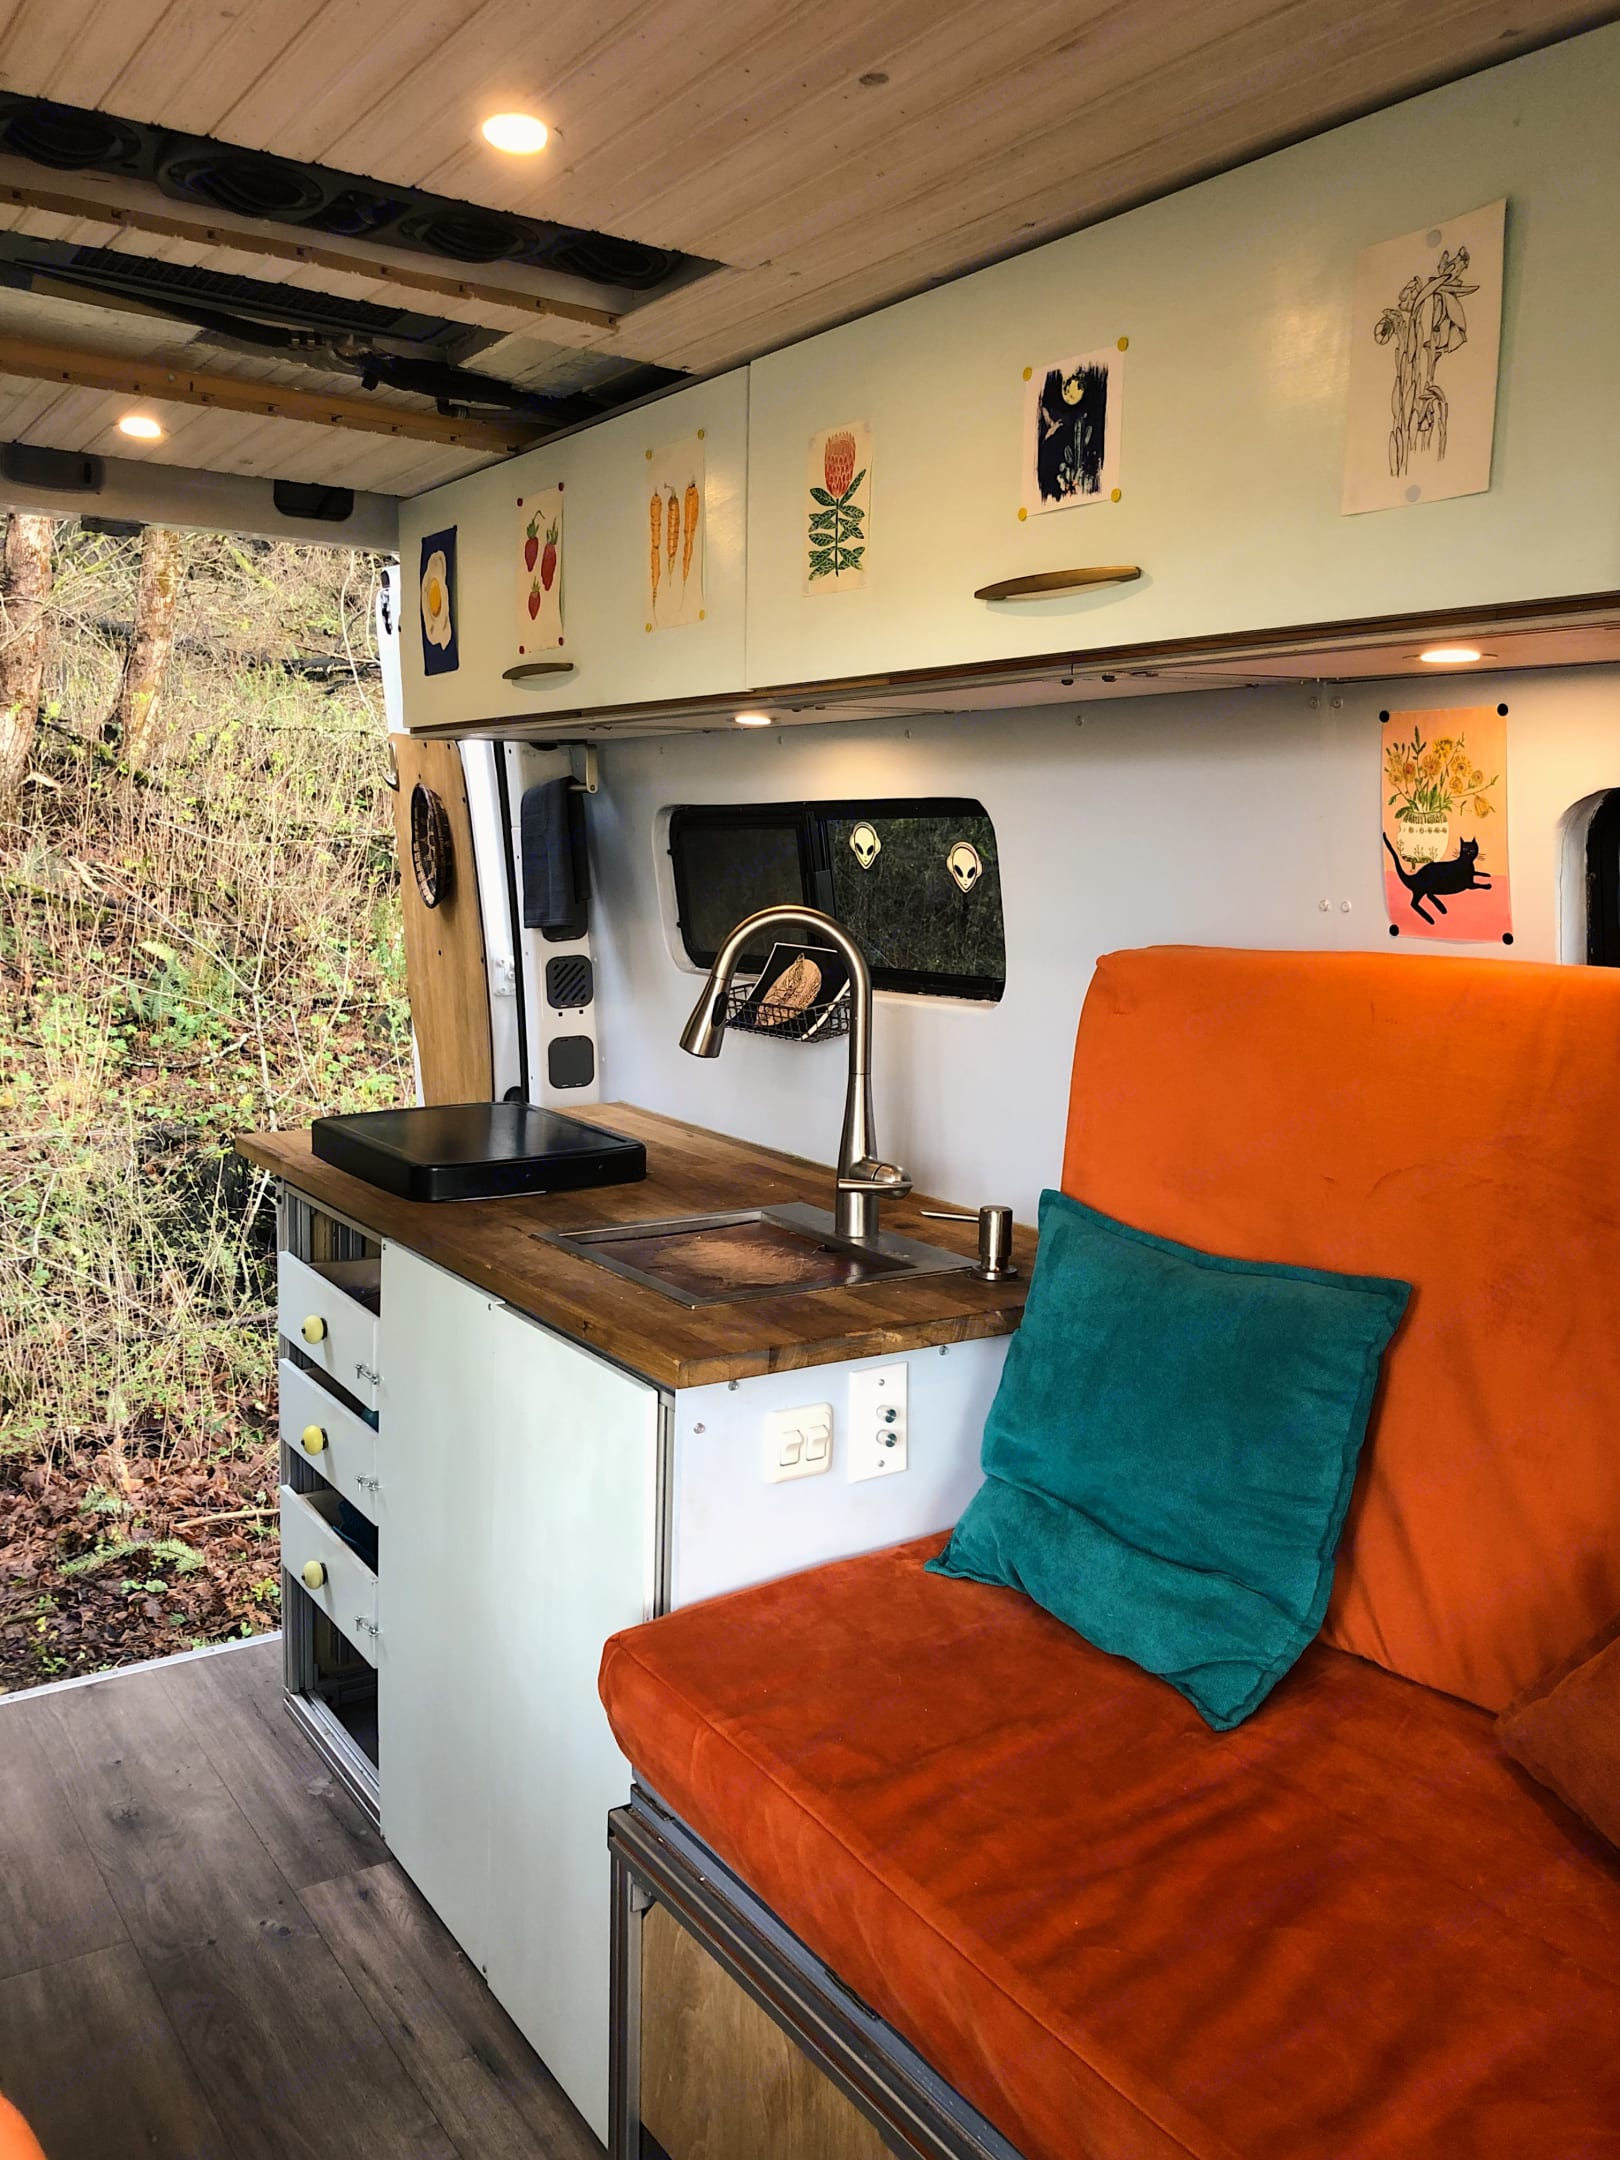 Just like at home, people will gather in the kitchen. Luckily the bed converts to a seating area so there is lots of space to hang.. Mercedes-Benz Sprinter 2012